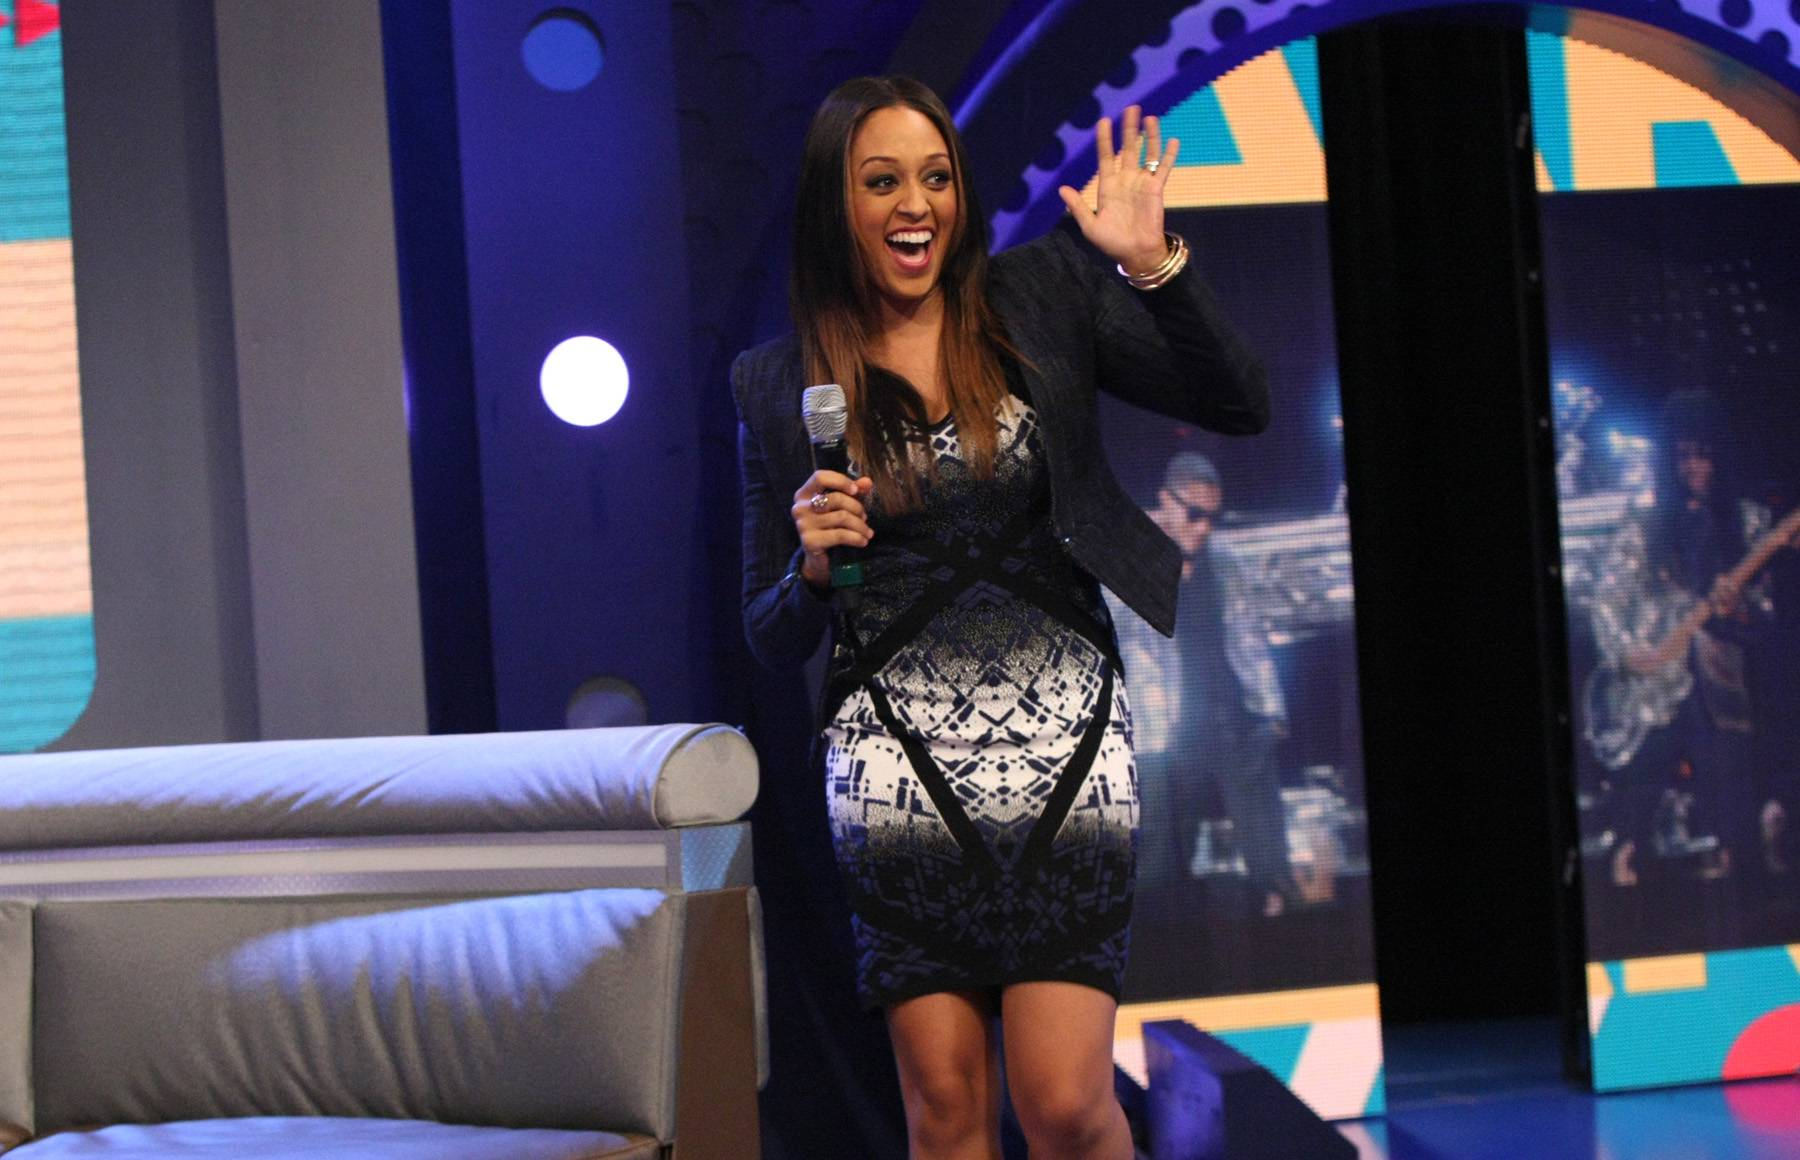 She's Arrived - Actress Tia Mowry-Hardrict finally hits the 106 & Park stage. The excitement was high.(Photo: Bennett Raglin/BET/Getty Images for BET)